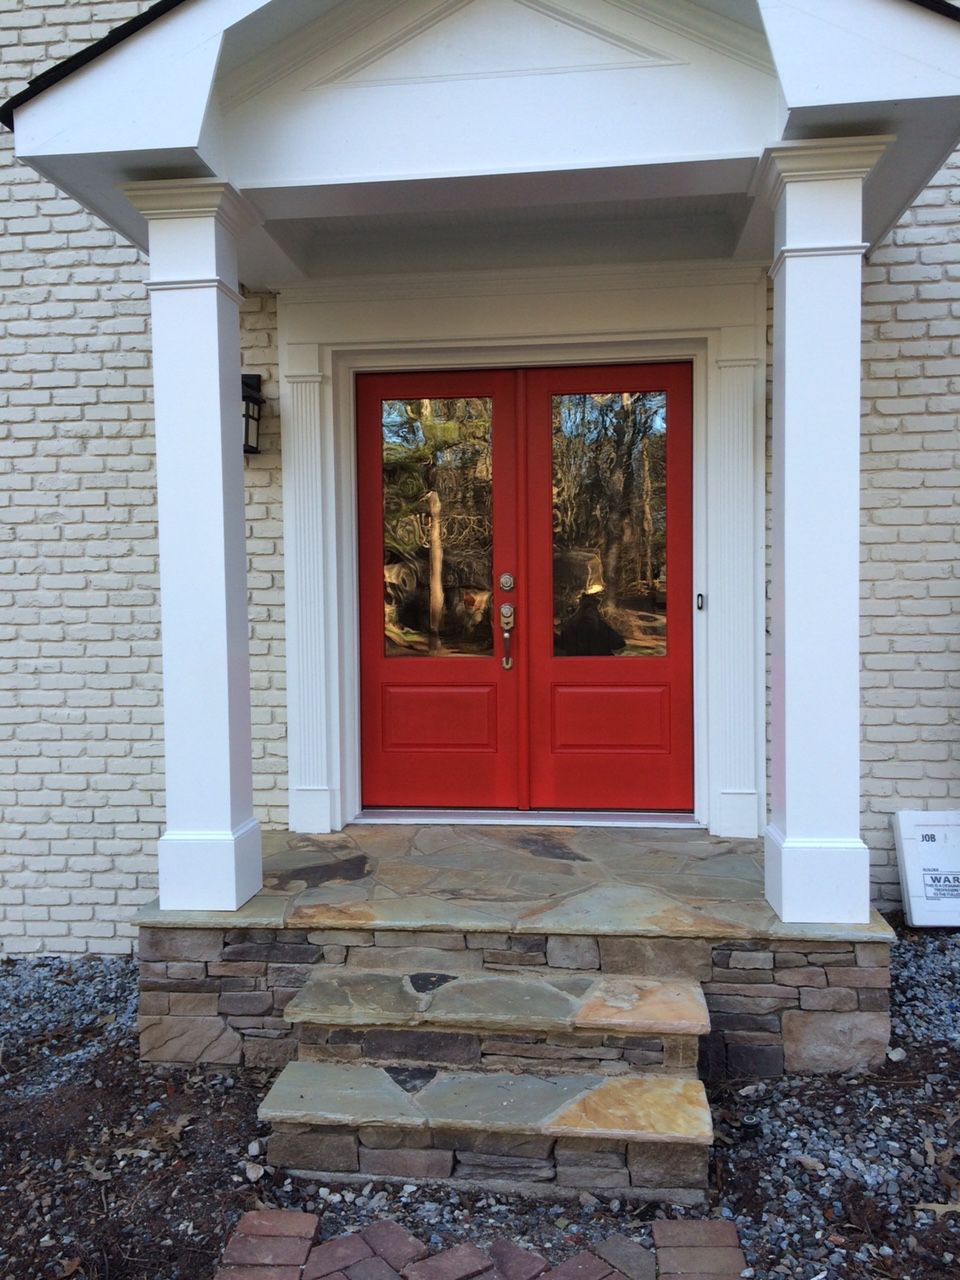 Portico With Red Door And With New Stone Steps At East Cobb Home By